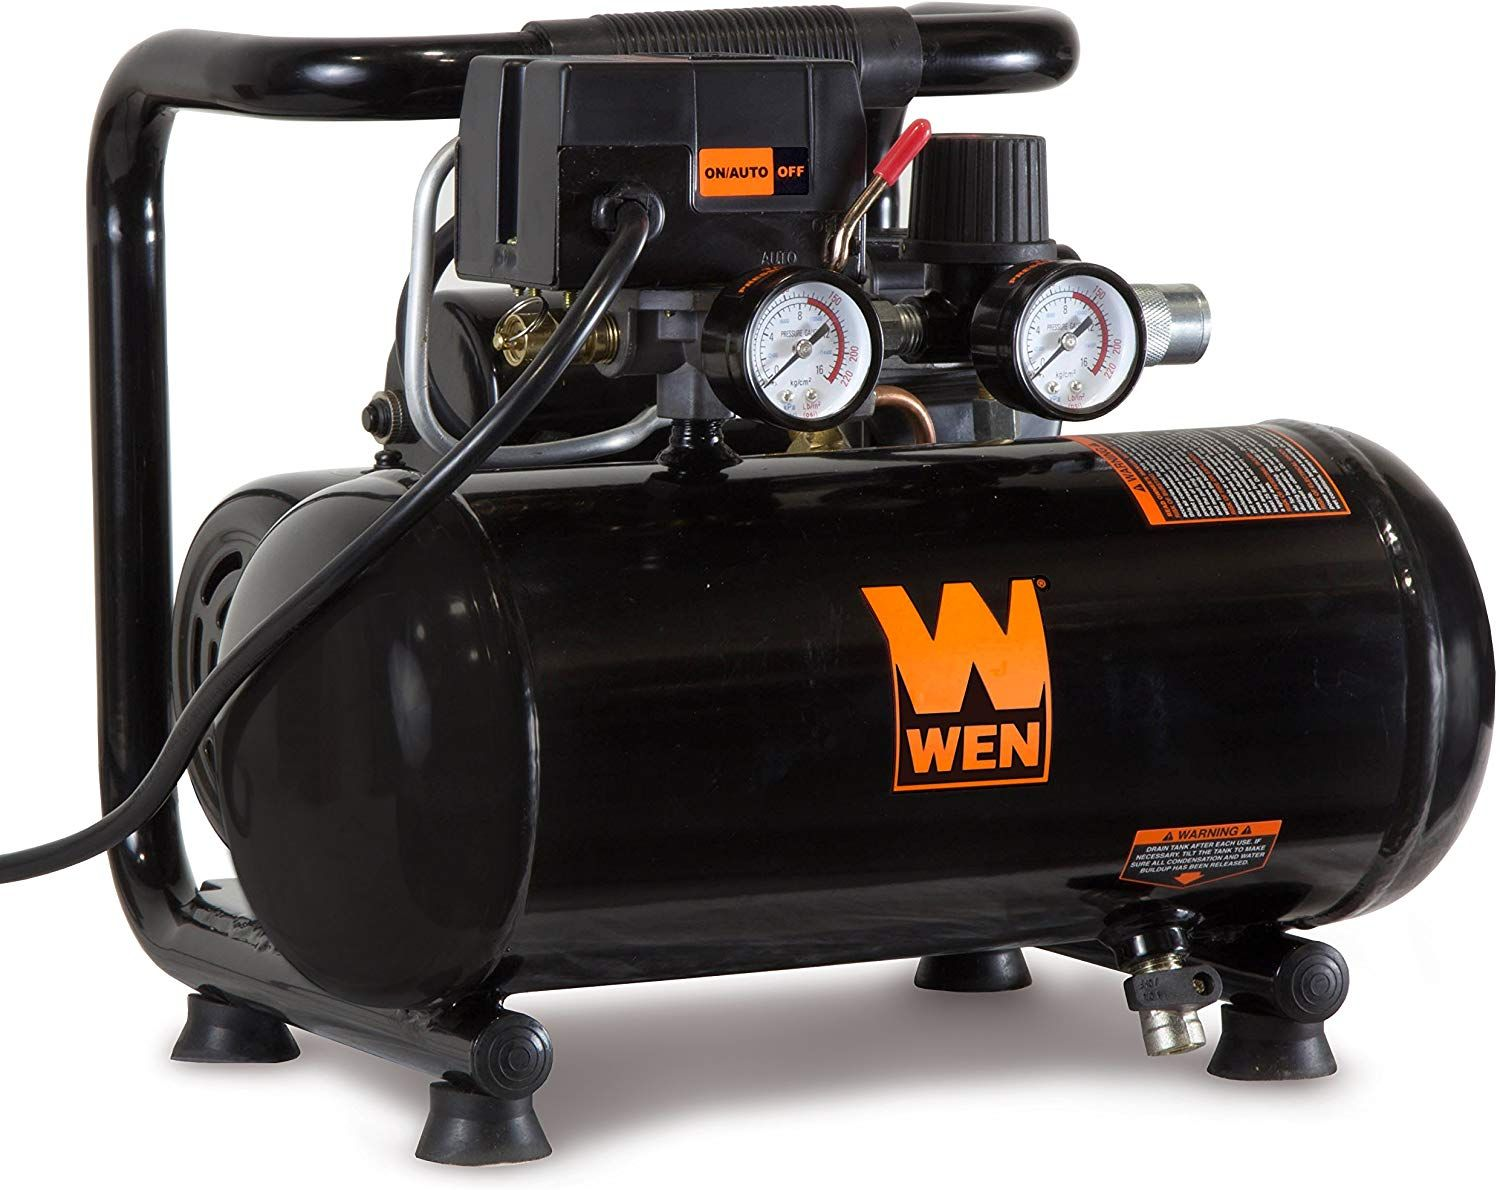 WEN 2281 1Gallon OilFree Horizontal Portable Air